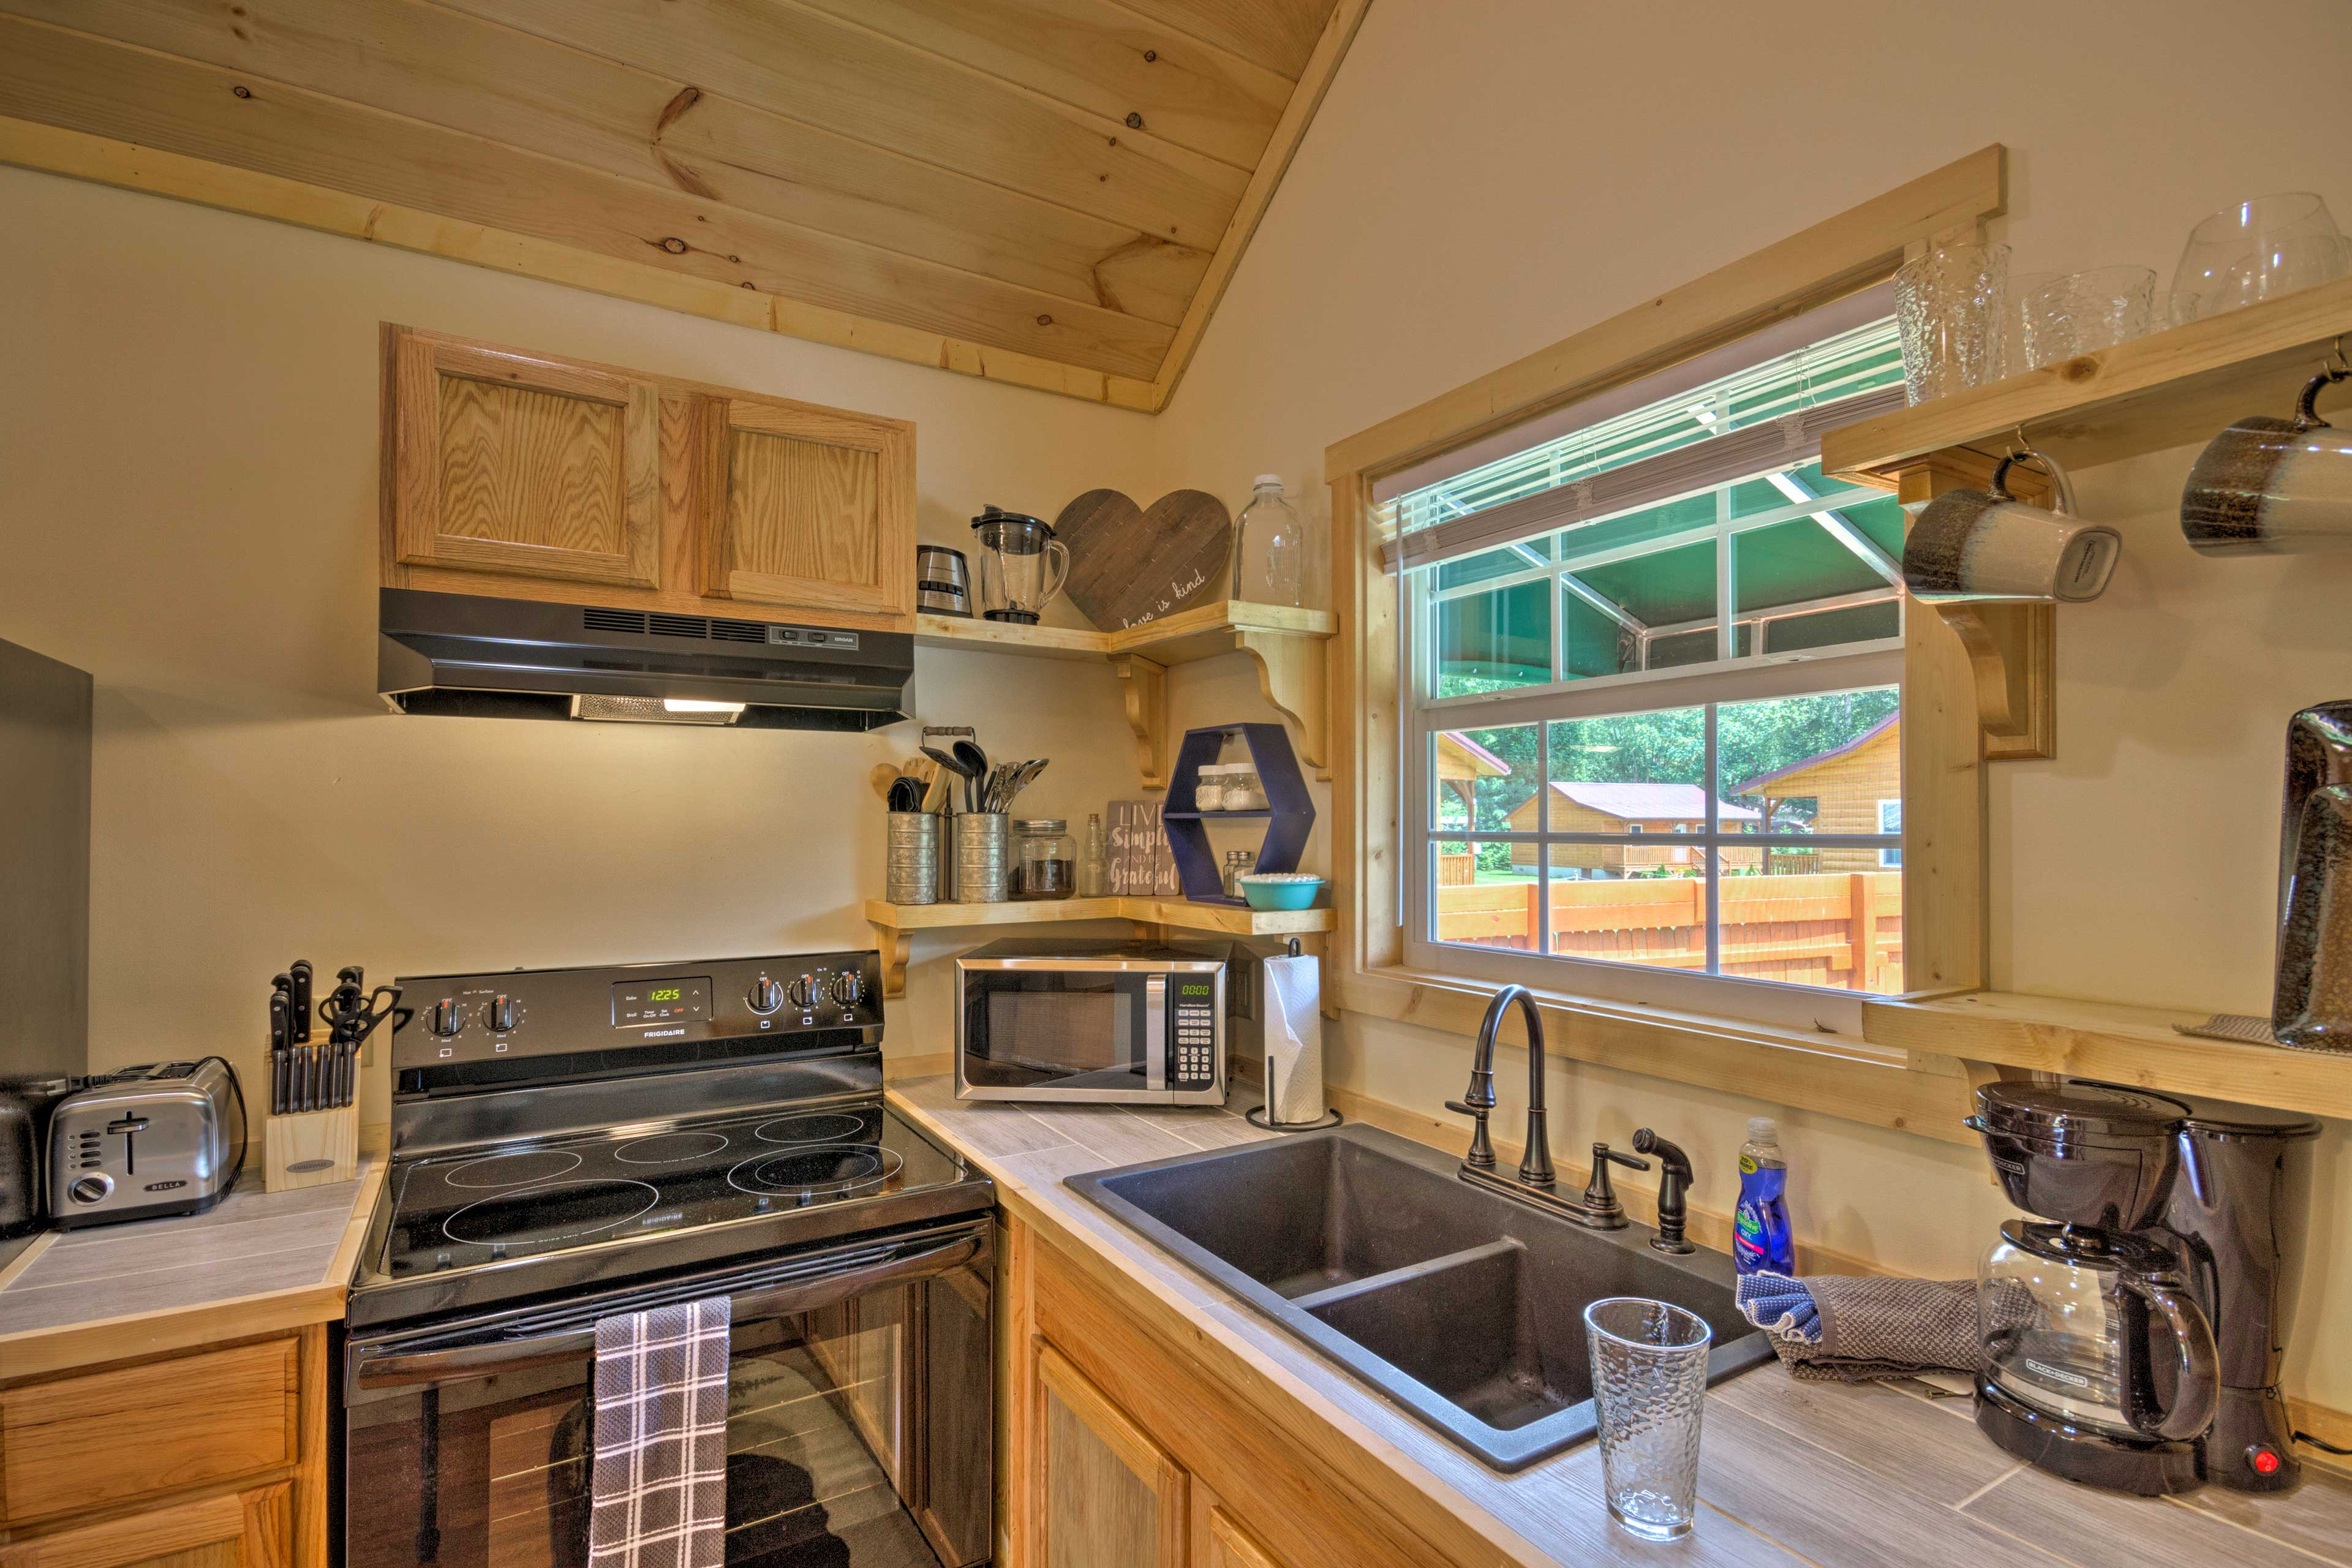 Channel your inner Iron Chef in the fully equipped kitchen.